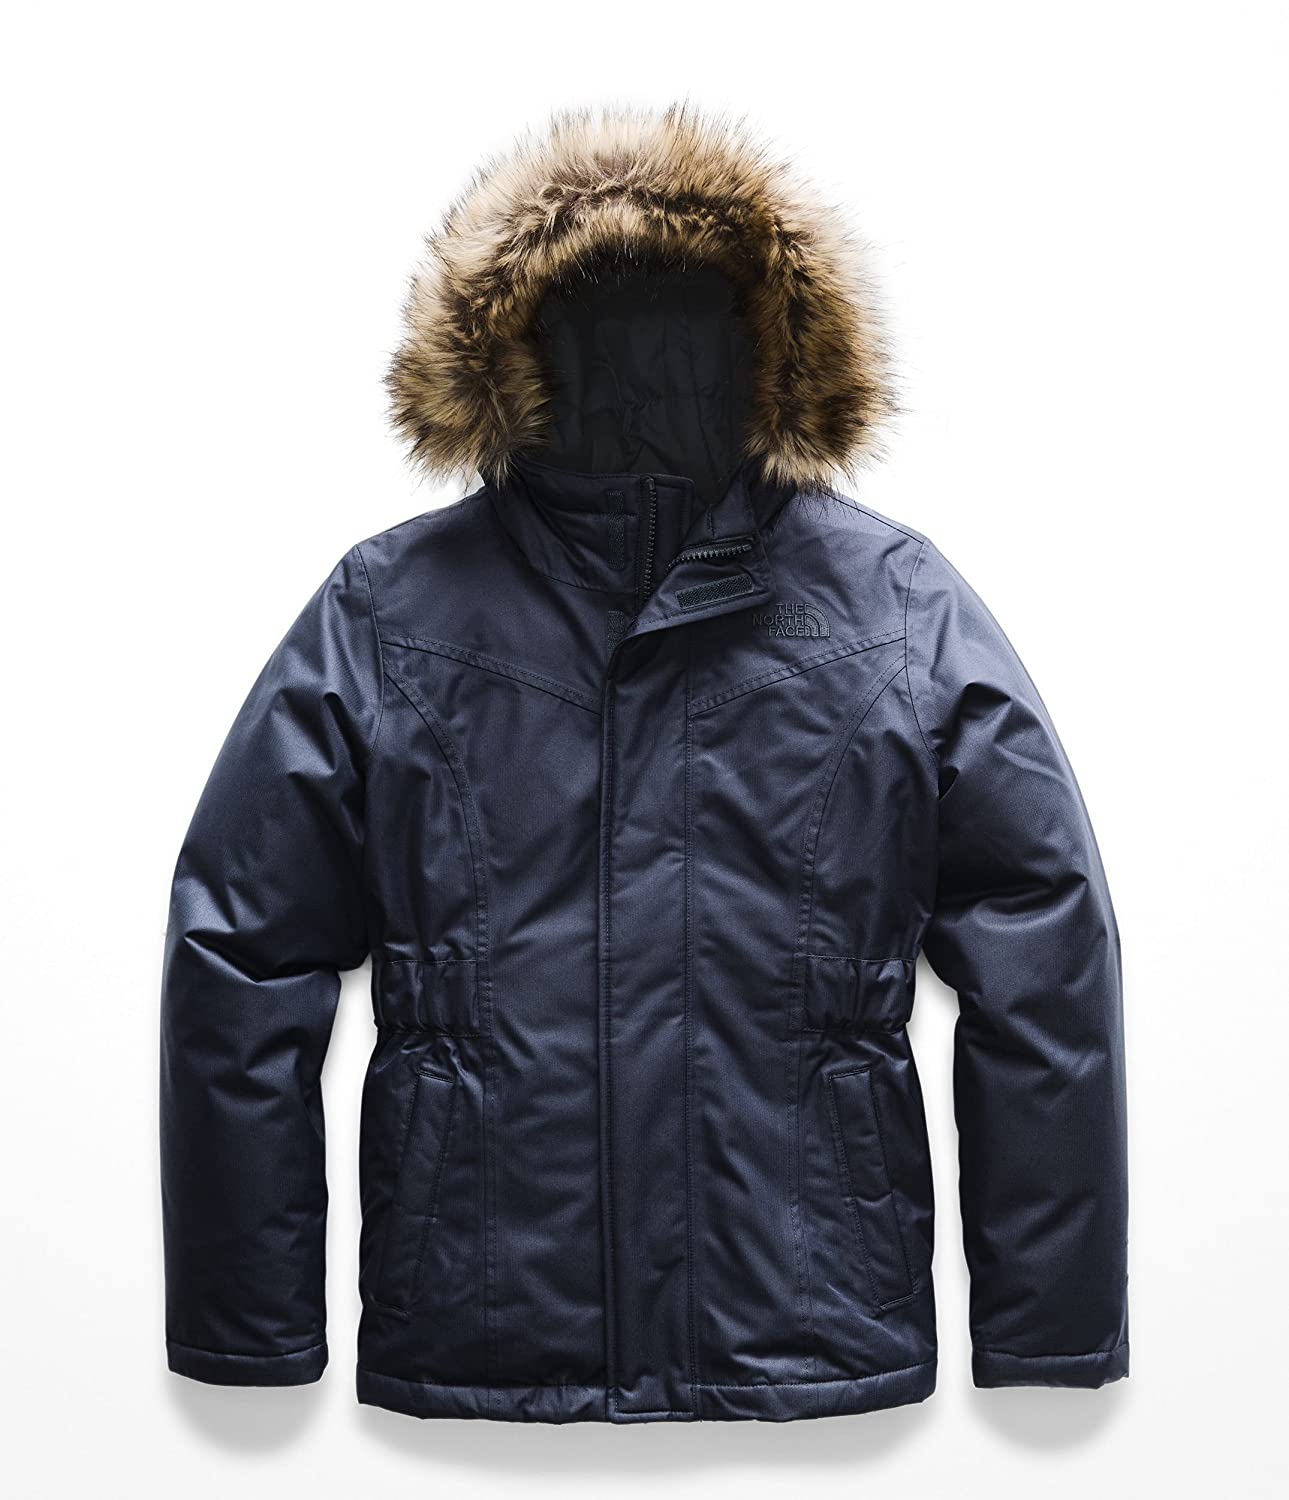 ef8efc9c1b72 Amazon.com  The North Face Girl s Greenland Down Parka  Clothing